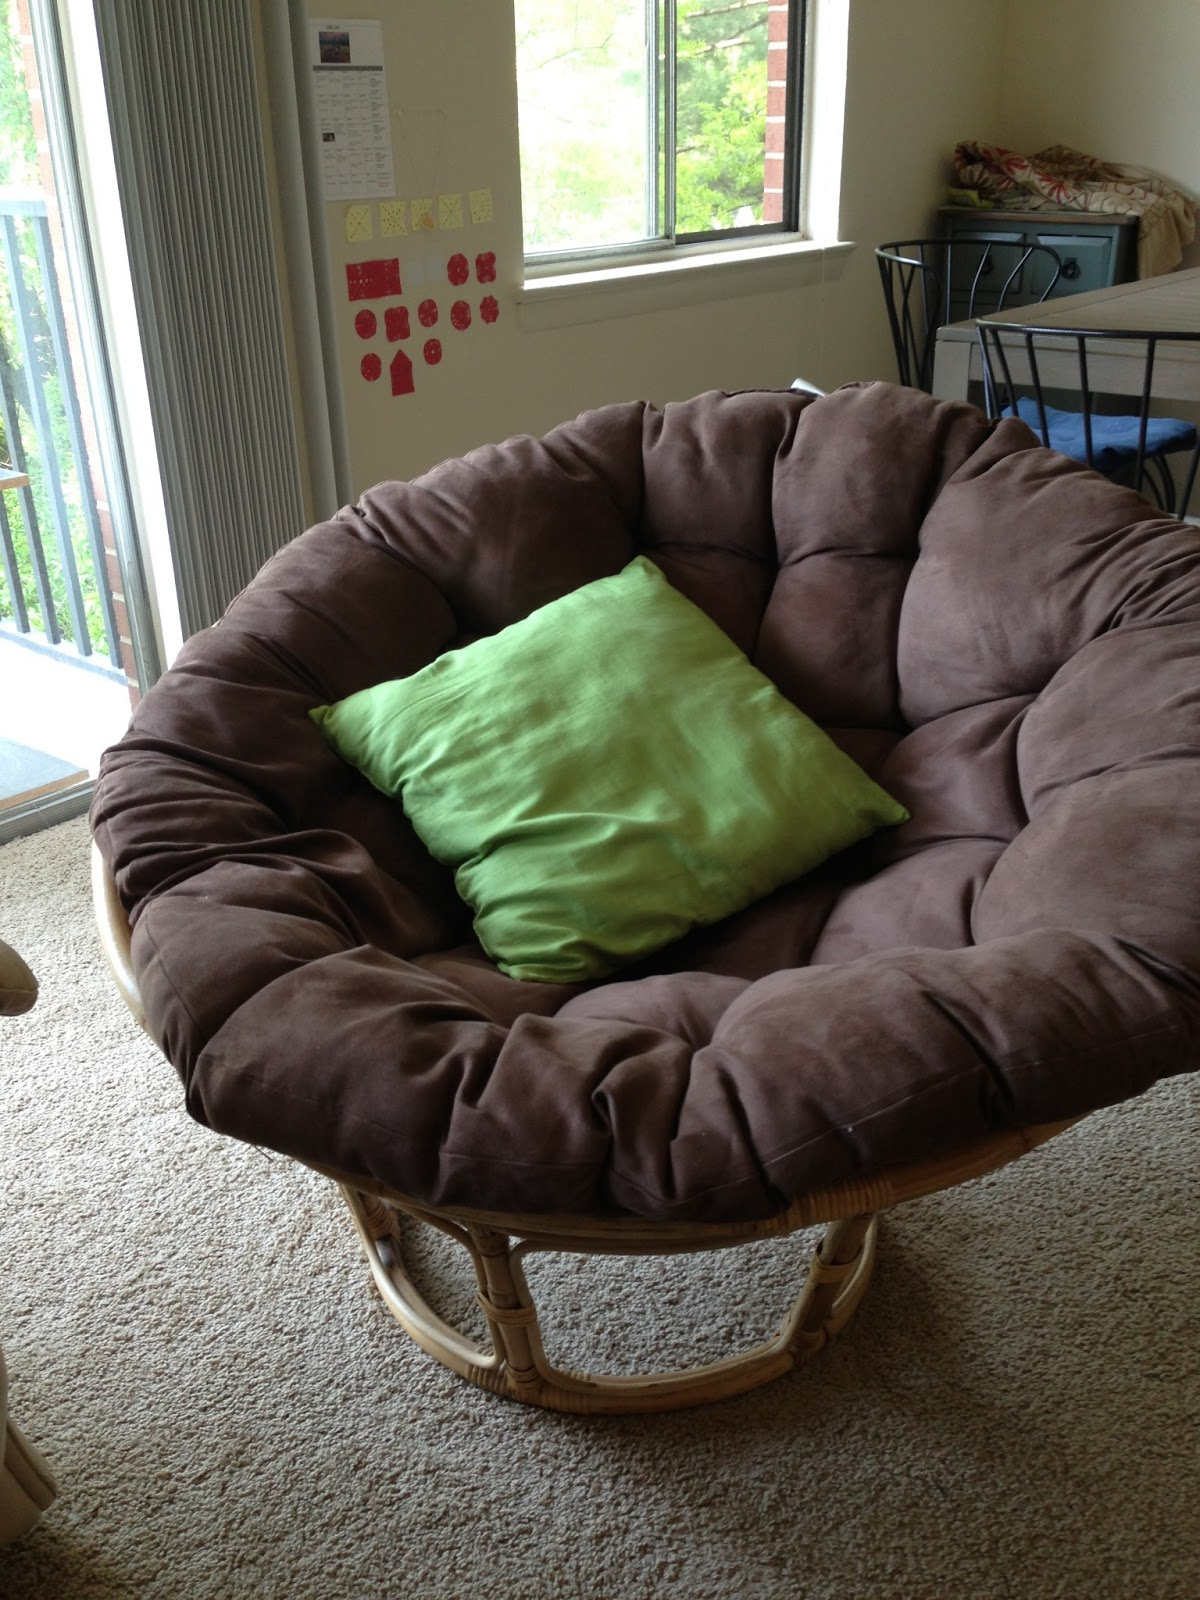 Ll Bean Adirondack Chair Cushions Kitchen Table And Chairs Ireland Moving Sale Great Furnitures From Ikea World Market